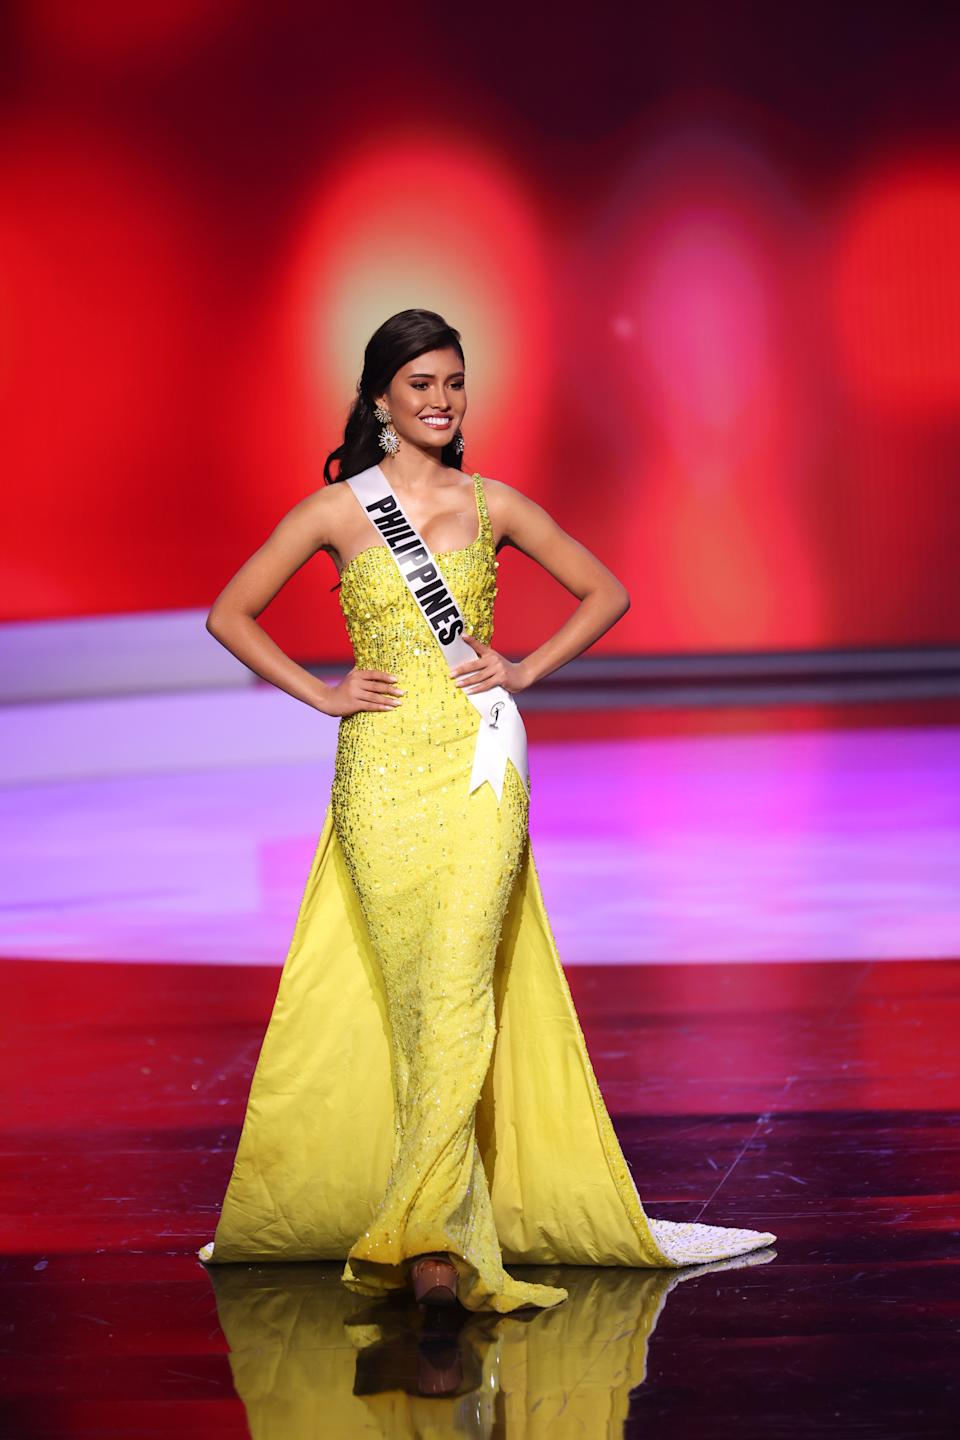 <p>Miss Philippines Rabiya Mateo appears onstage at the Miss Universe 2021 Preliminary Competition at Seminole Hard Rock Hotel & Casino on May 14, 2021 in Hollywood, Florida. (Photo by Rodrigo Varela/Getty Images).</p>